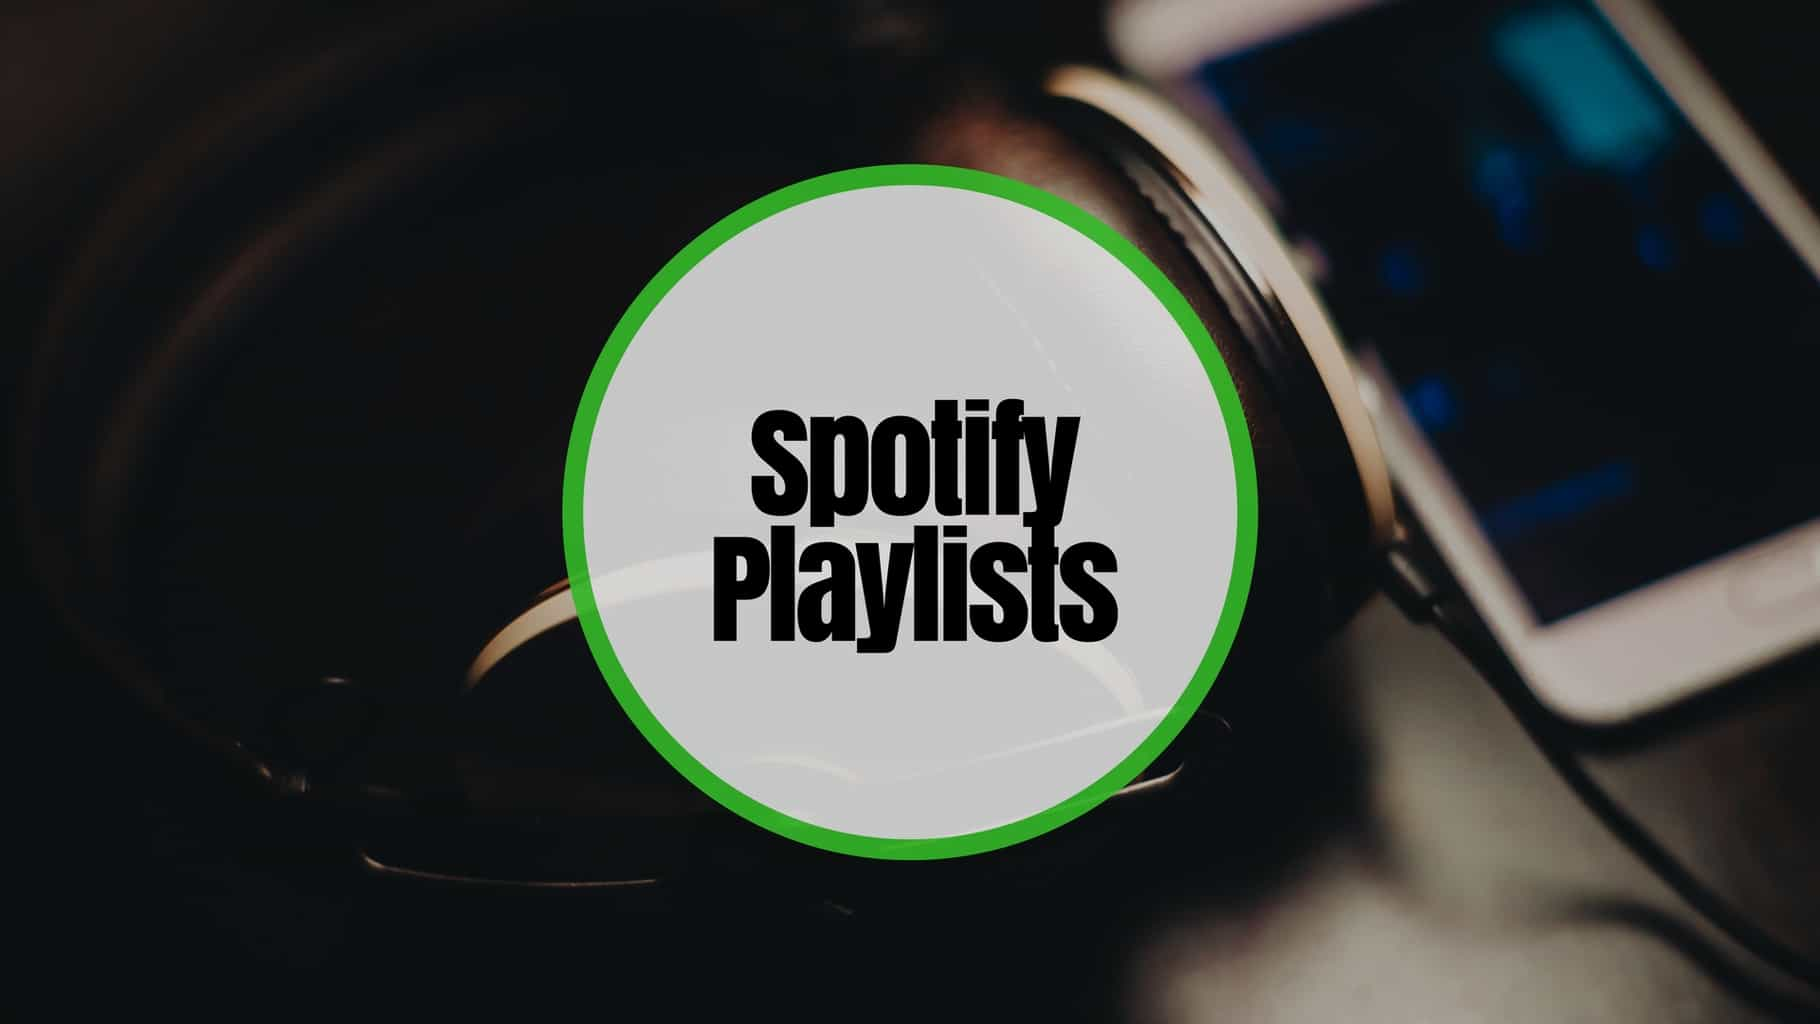 Best Spotify Playlists